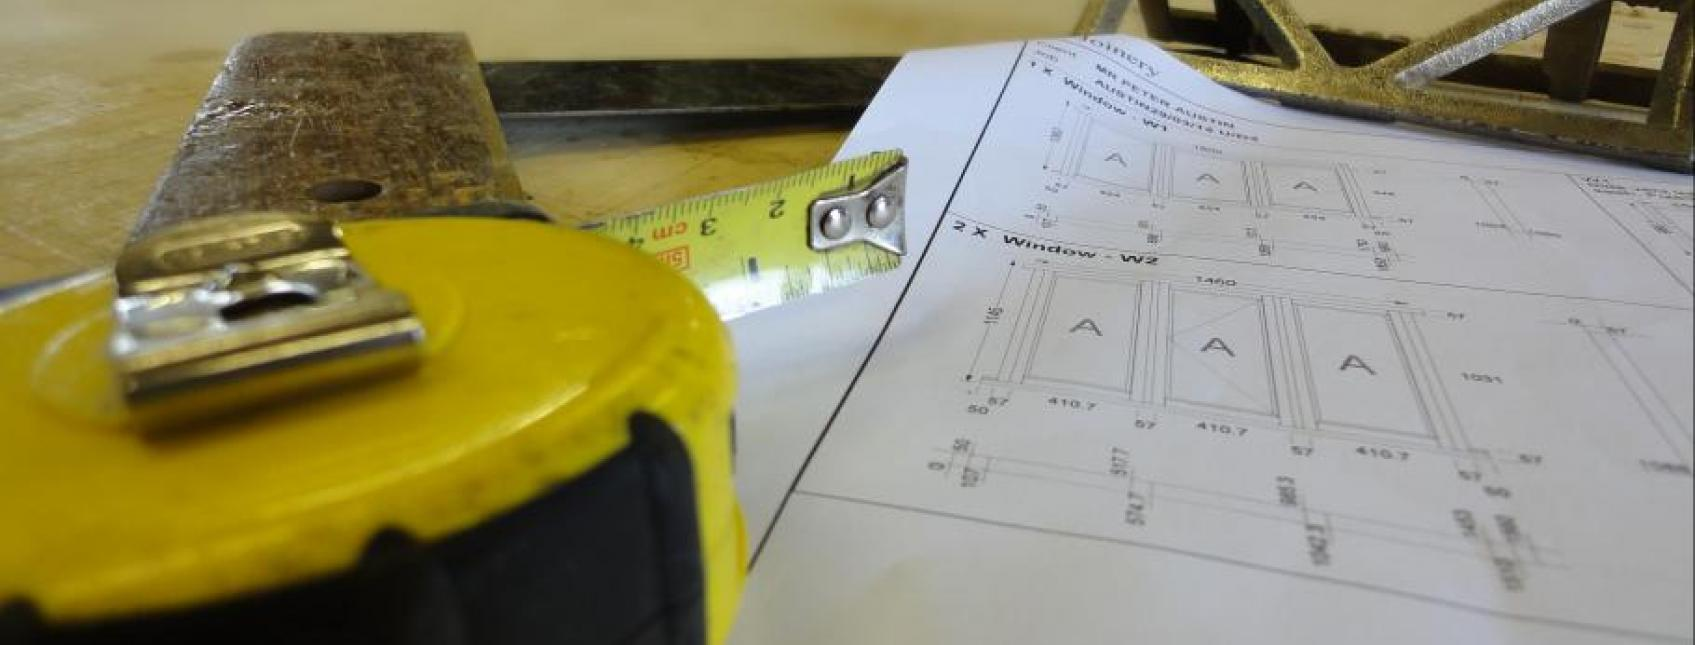 Made to Measure - Bespoke Wood Joinery